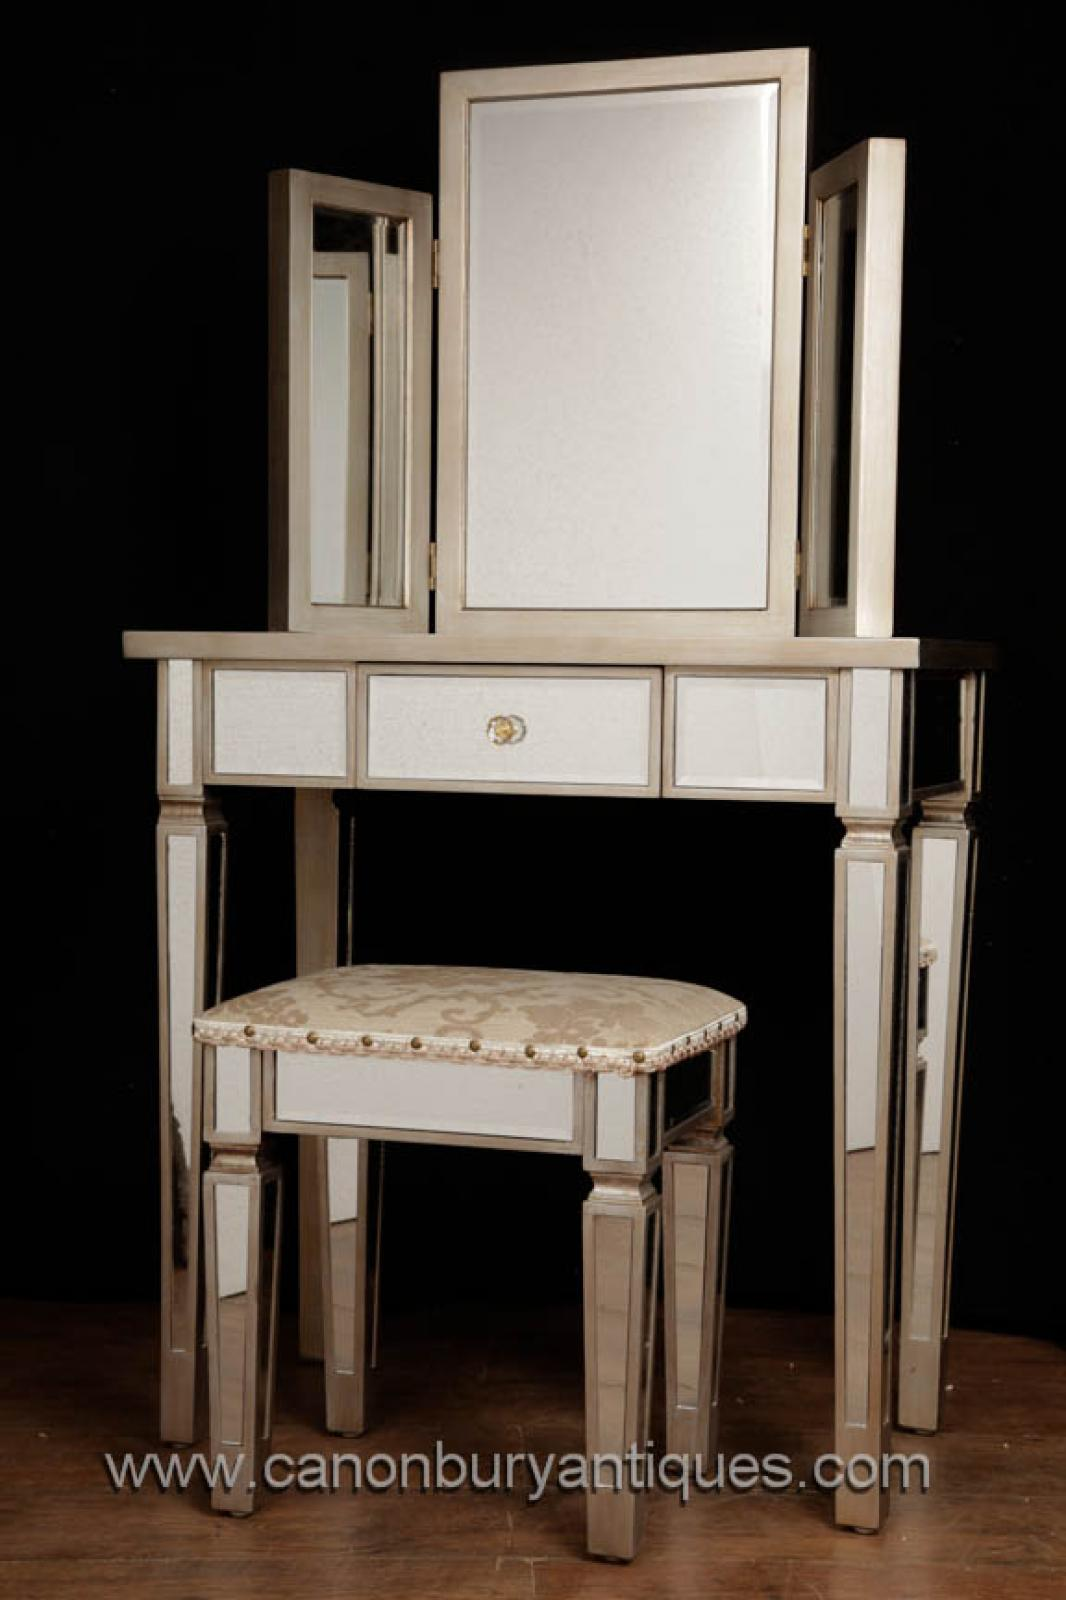 Pair Bed Stools: Art Deco Mirrored Dressing Table Stool Set Bedroom